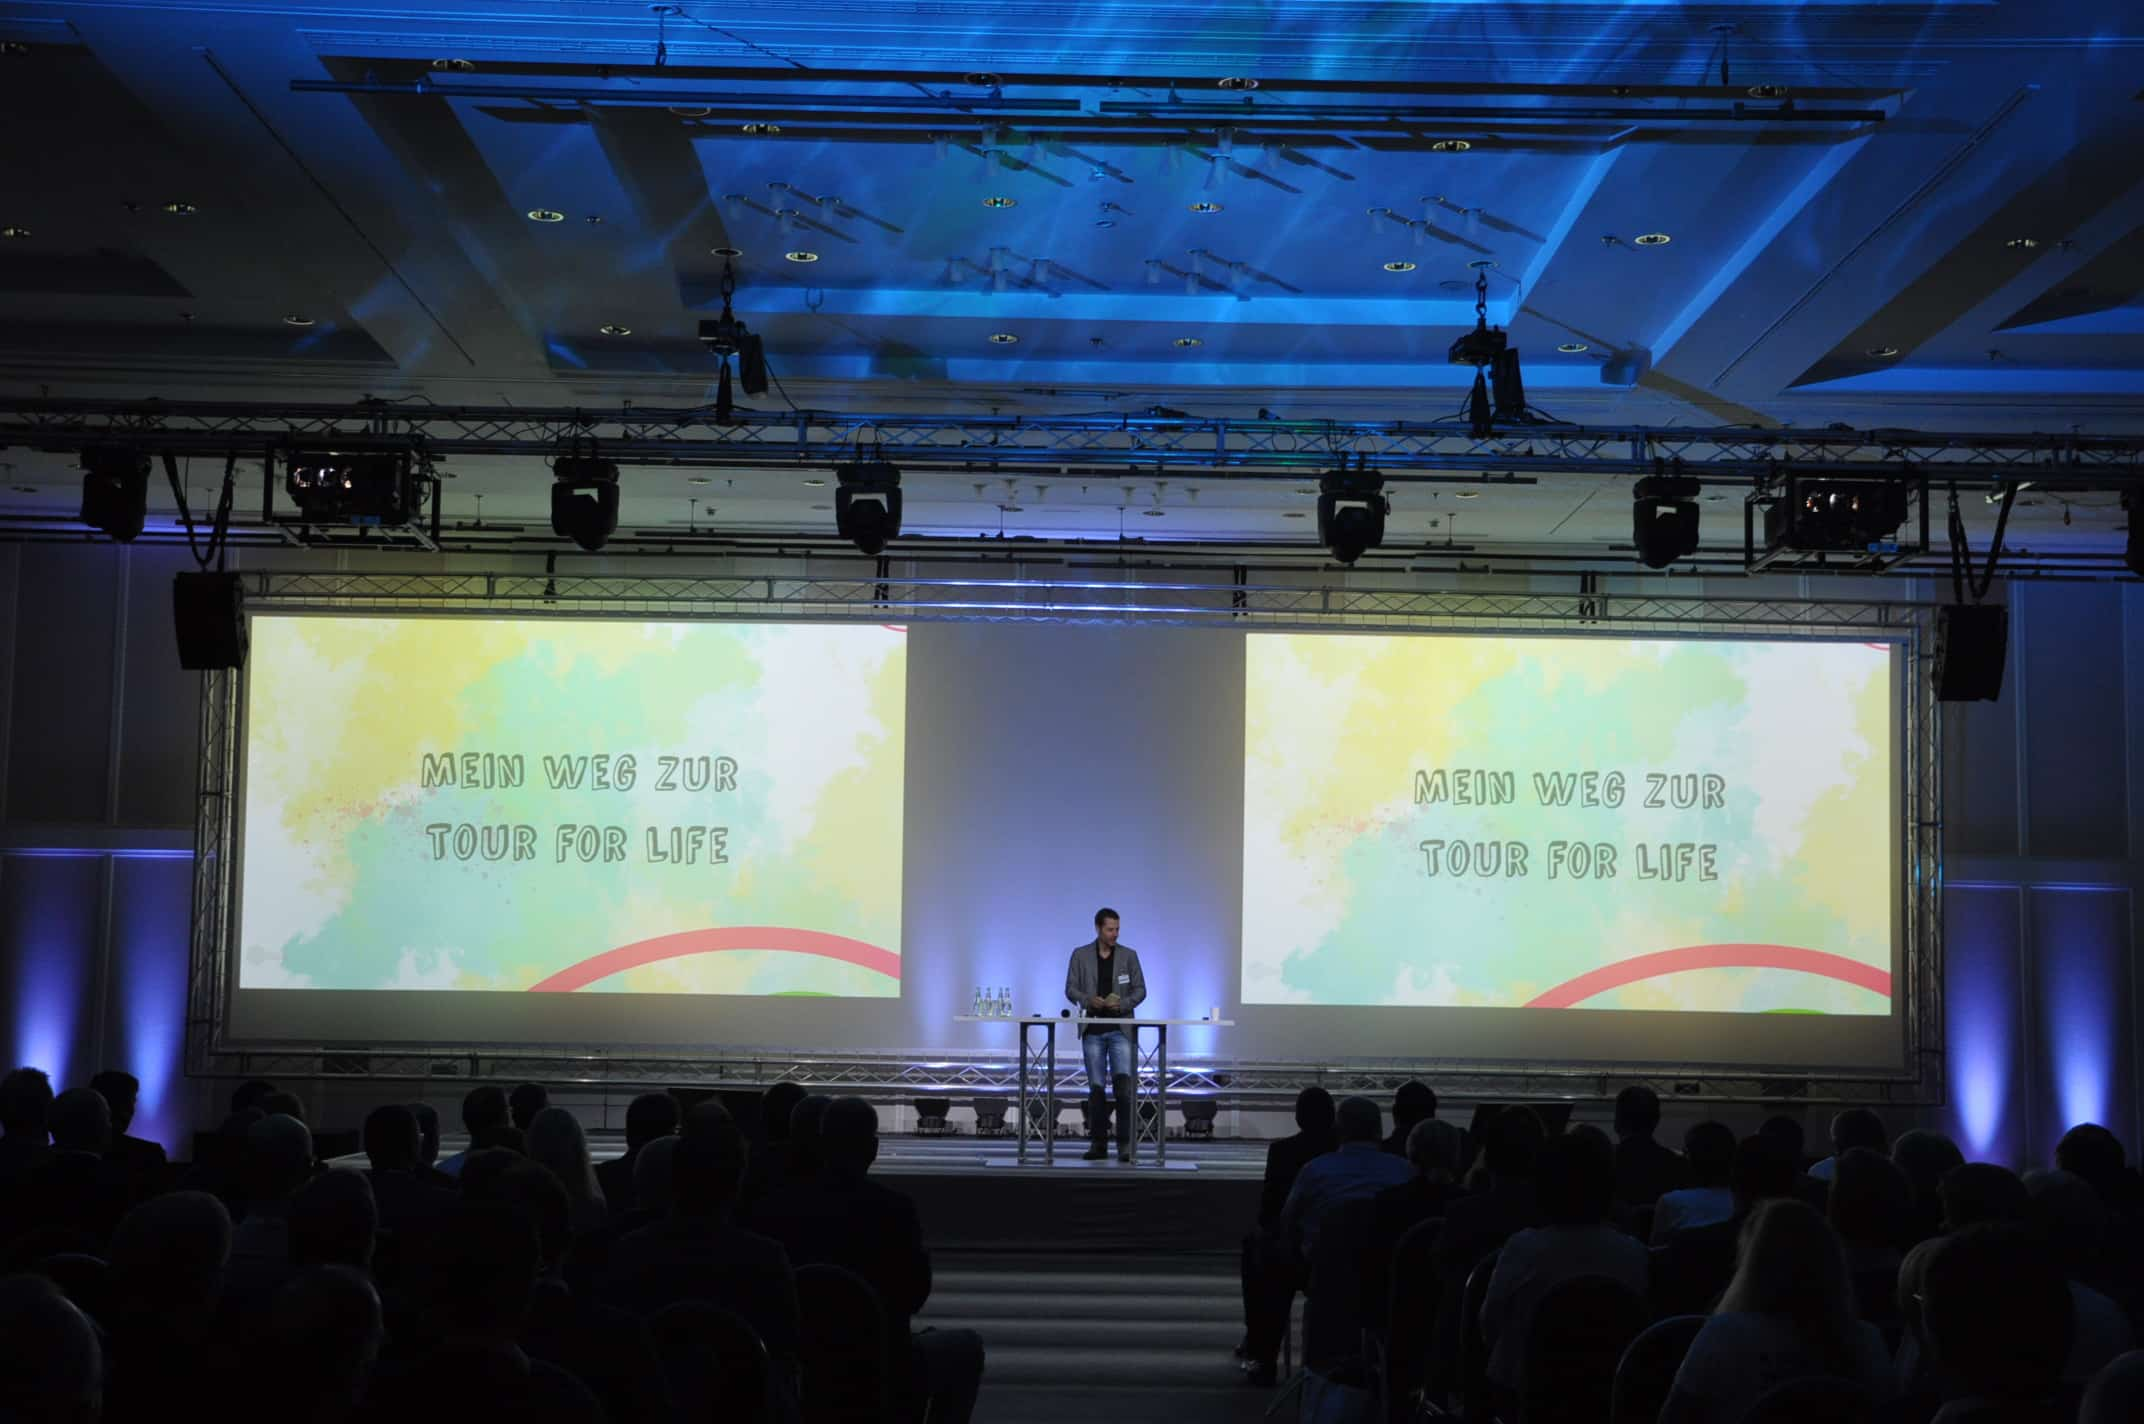 <!--:de-->Tour for Life 2015 – Ein kurzer Jahresrückblick <!--:--><!--:en-->Tour for Life 2015 – a review on the past year<!--:-->